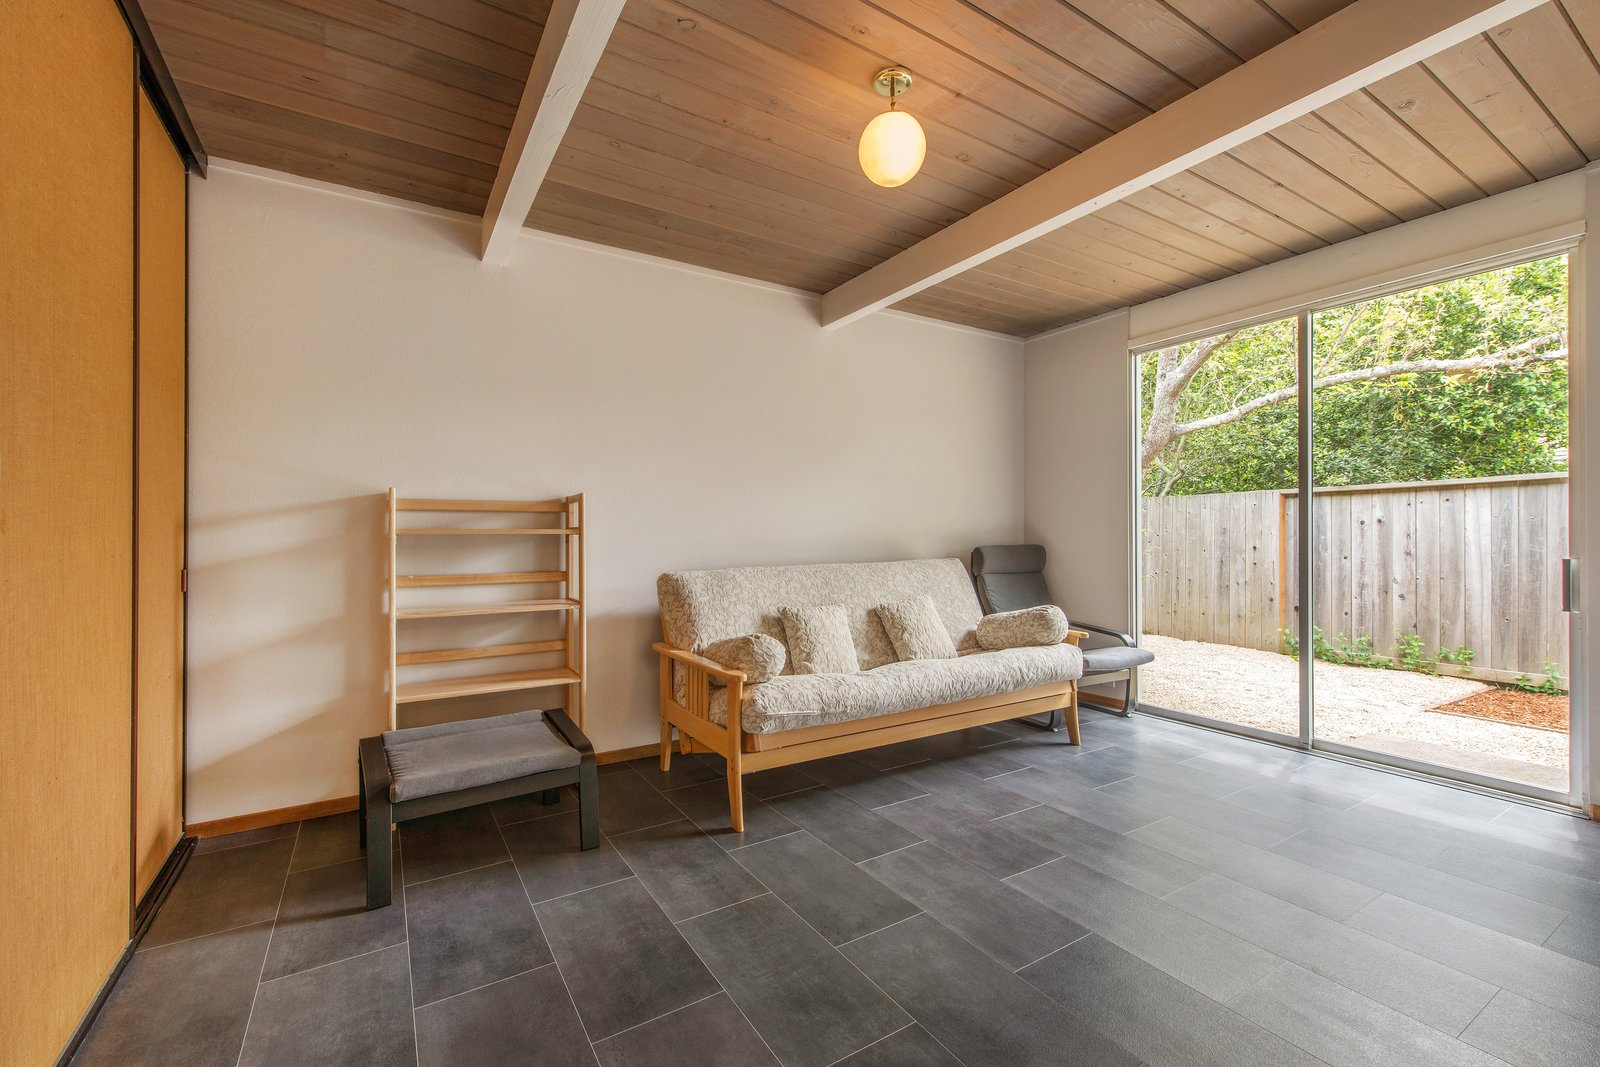 Bedroom, Ceiling Lighting, Laminate Floor, and Chair New Sonos laminate flooring has also been installed in all the bedrooms, bathrooms, kitchen, and office.     Photo 10 of 14 in Live Large in This Extra-Spacious Eichler That's Asking $1.38M